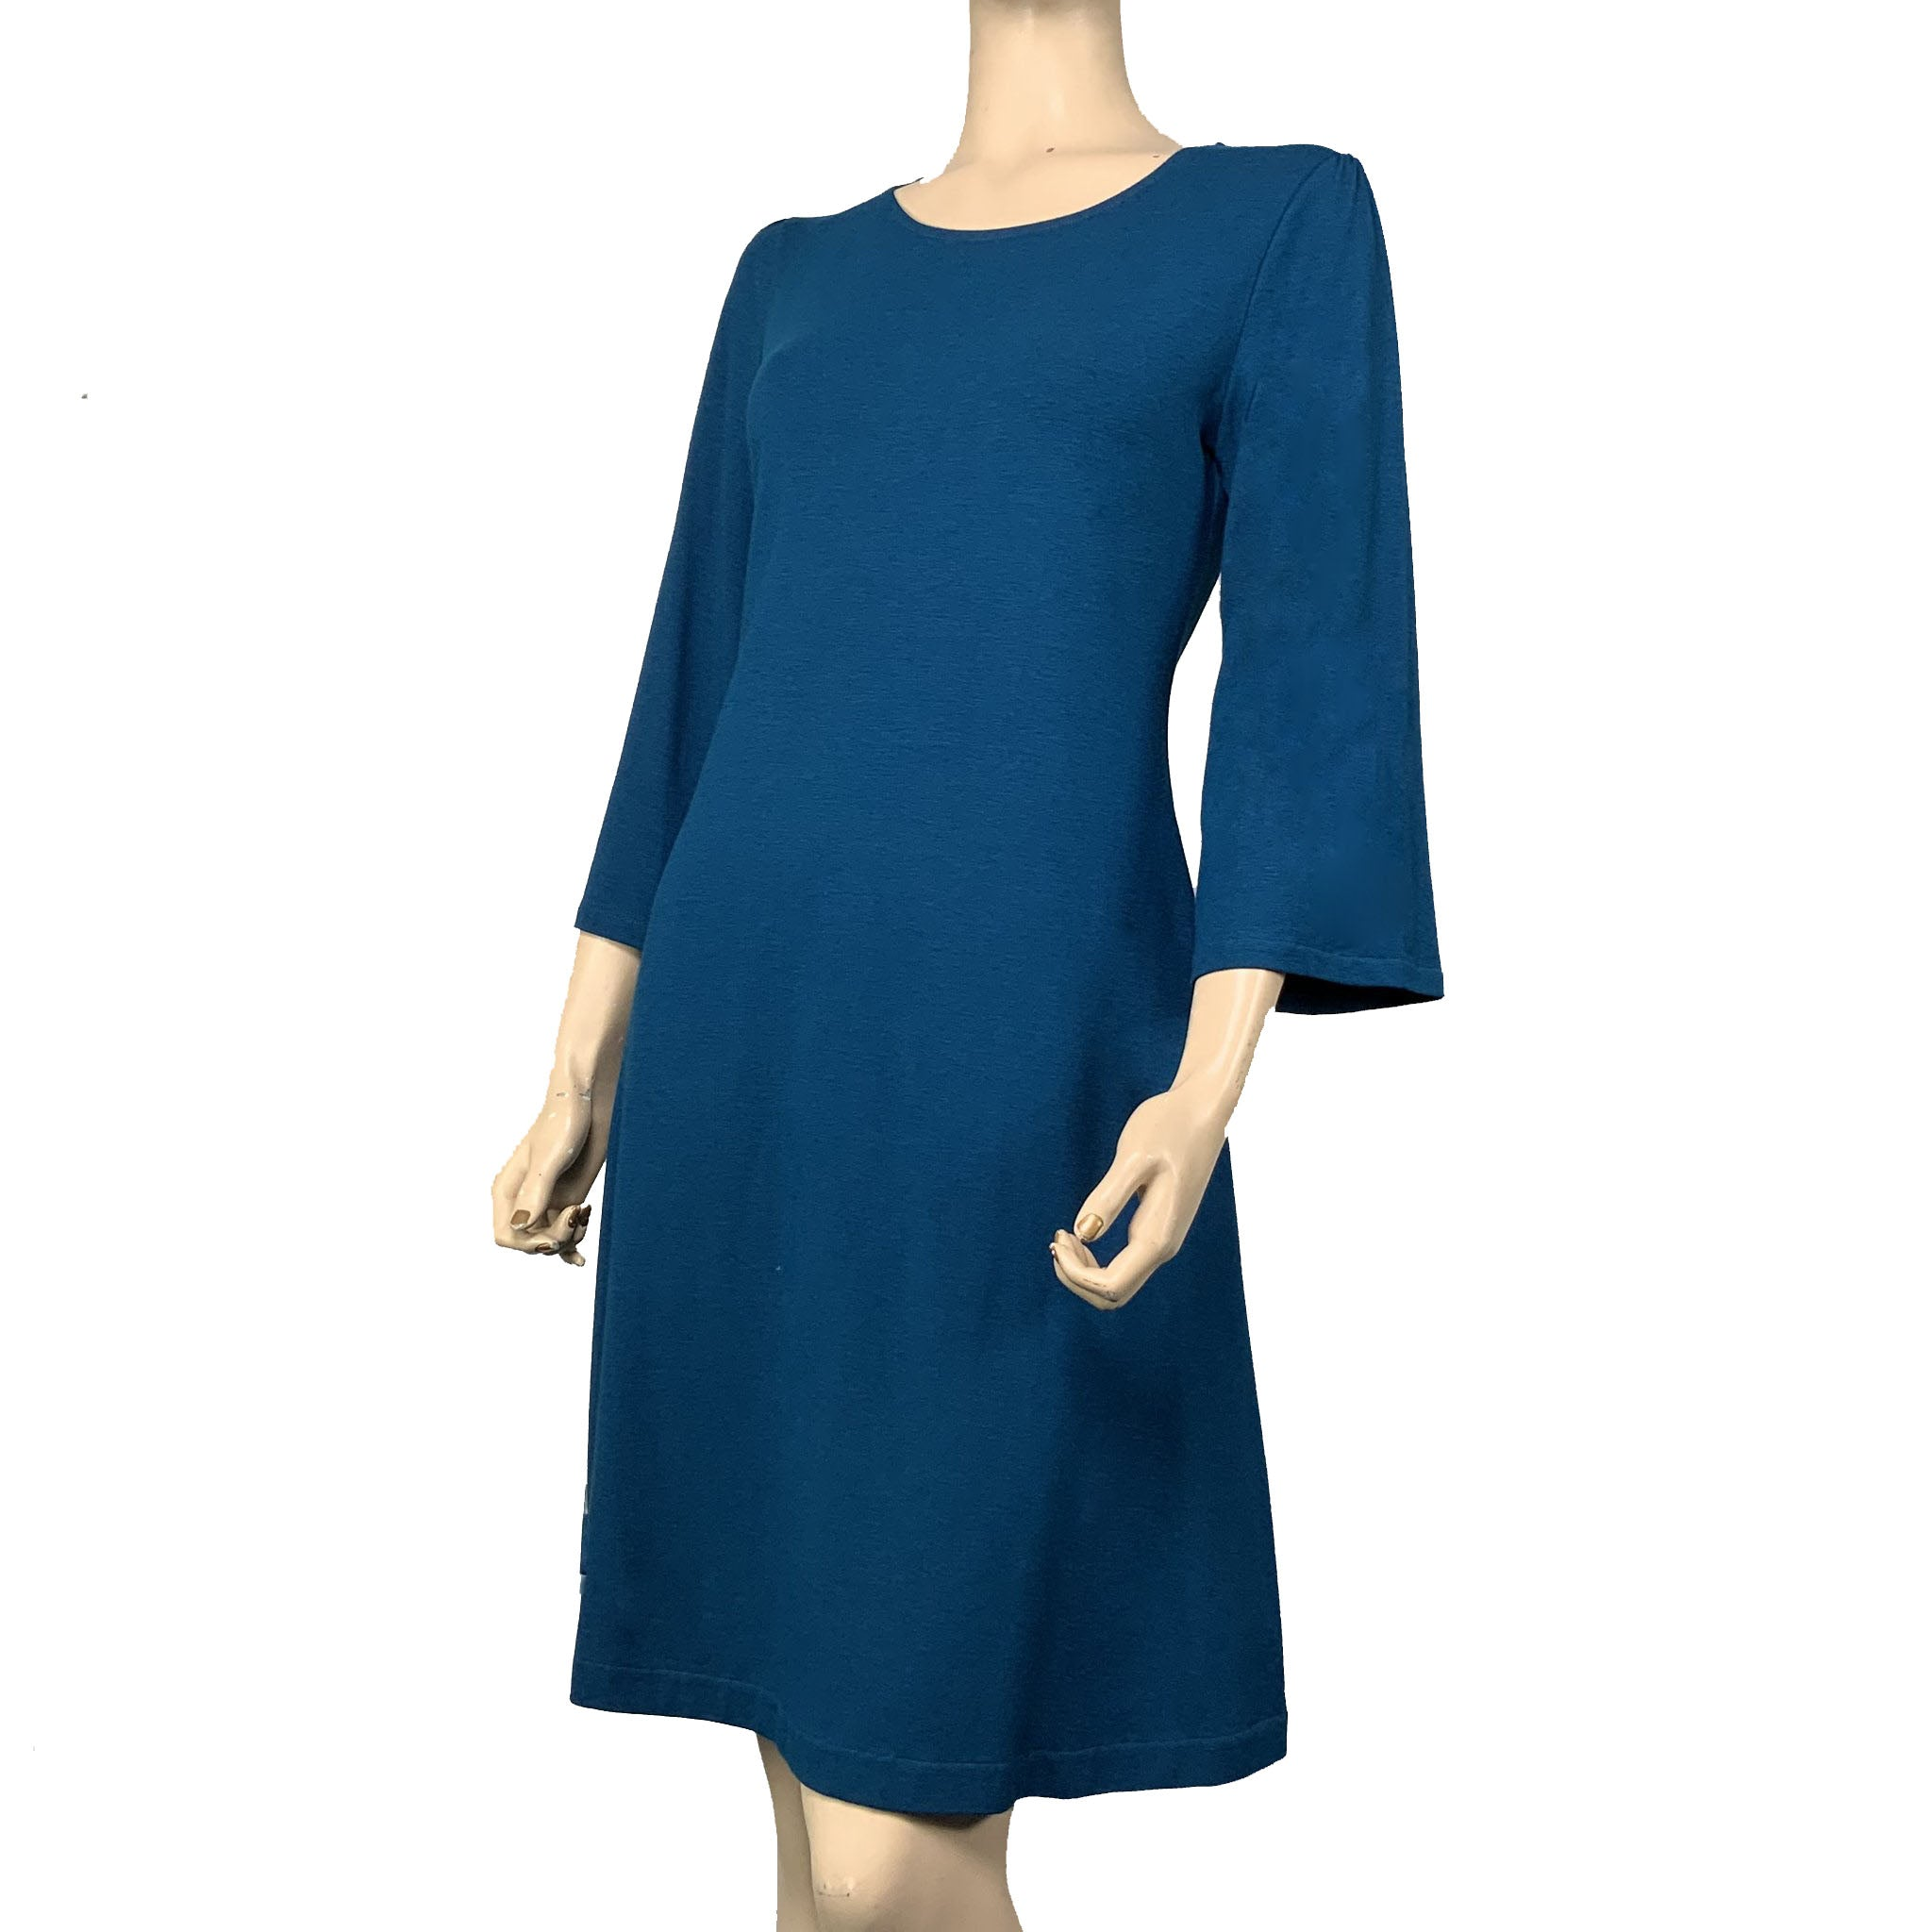 Solid Ruby Dress, Lucia fit, Teal, Flared Sleeve